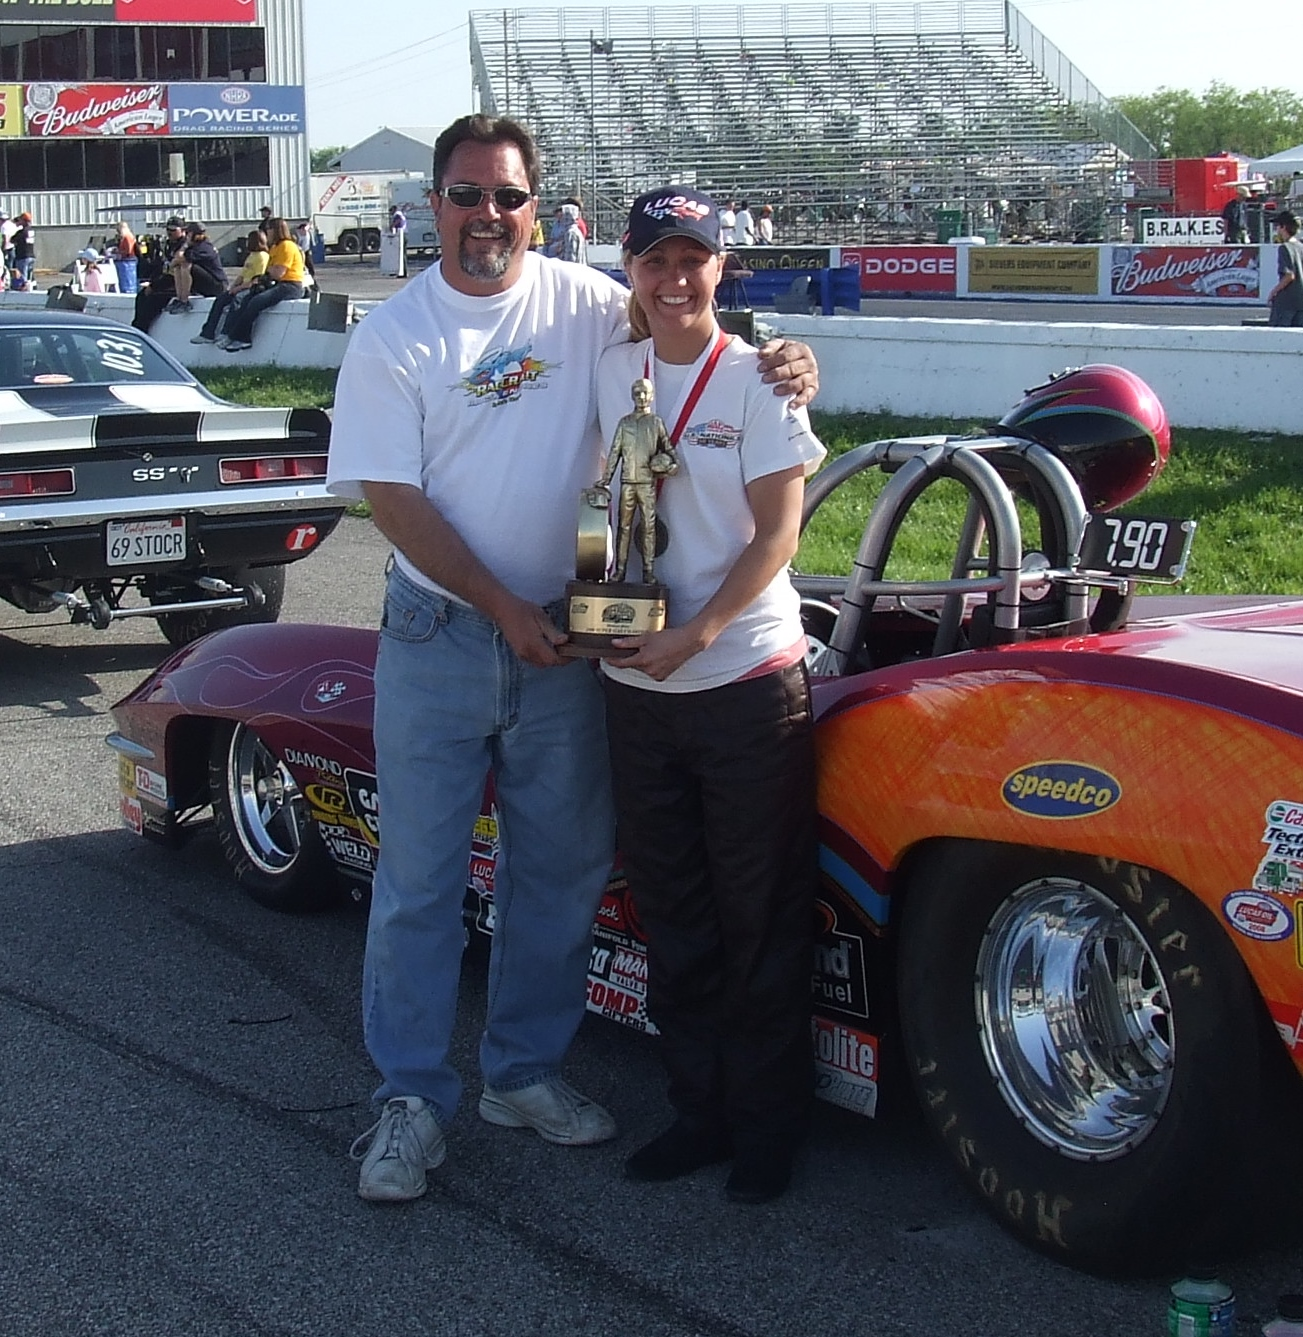 Super Gas racer Brina Splingaire following her first win at the O'Reilly NHRA Midwest Nationals